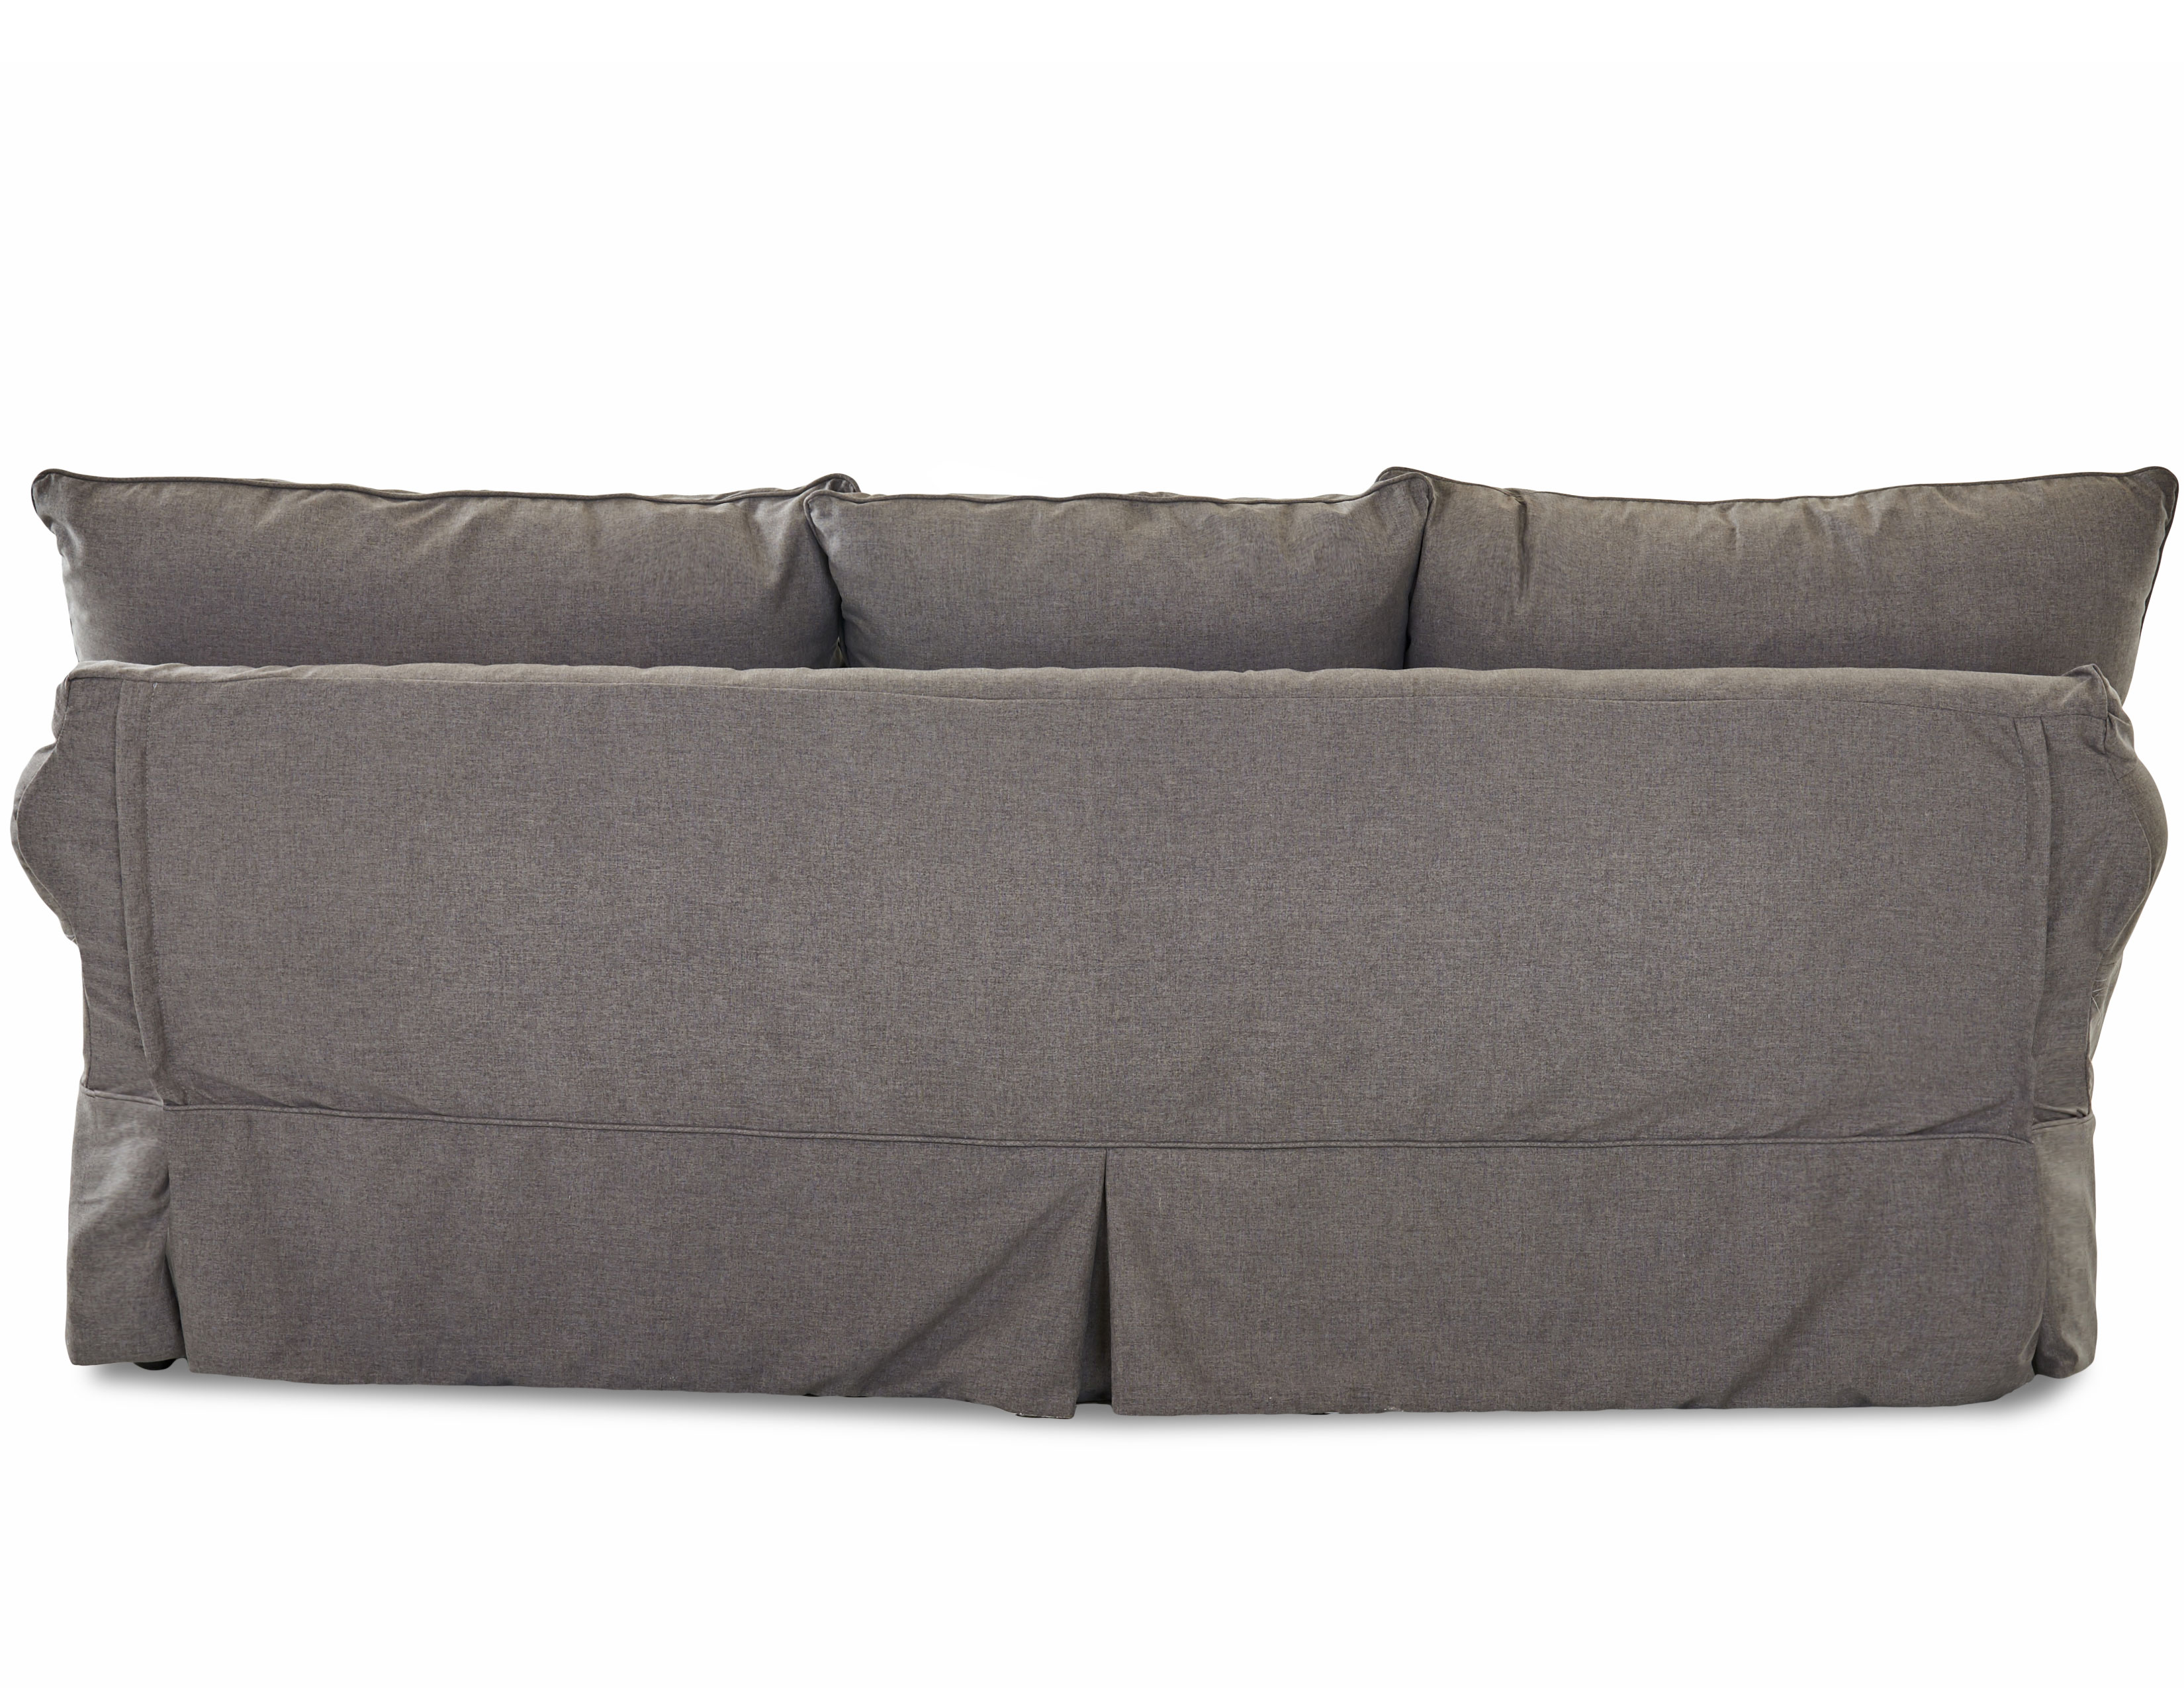 Outstanding Jenny 16100 Slip Cover Sofa With Down Blend Sofas And Andrewgaddart Wooden Chair Designs For Living Room Andrewgaddartcom